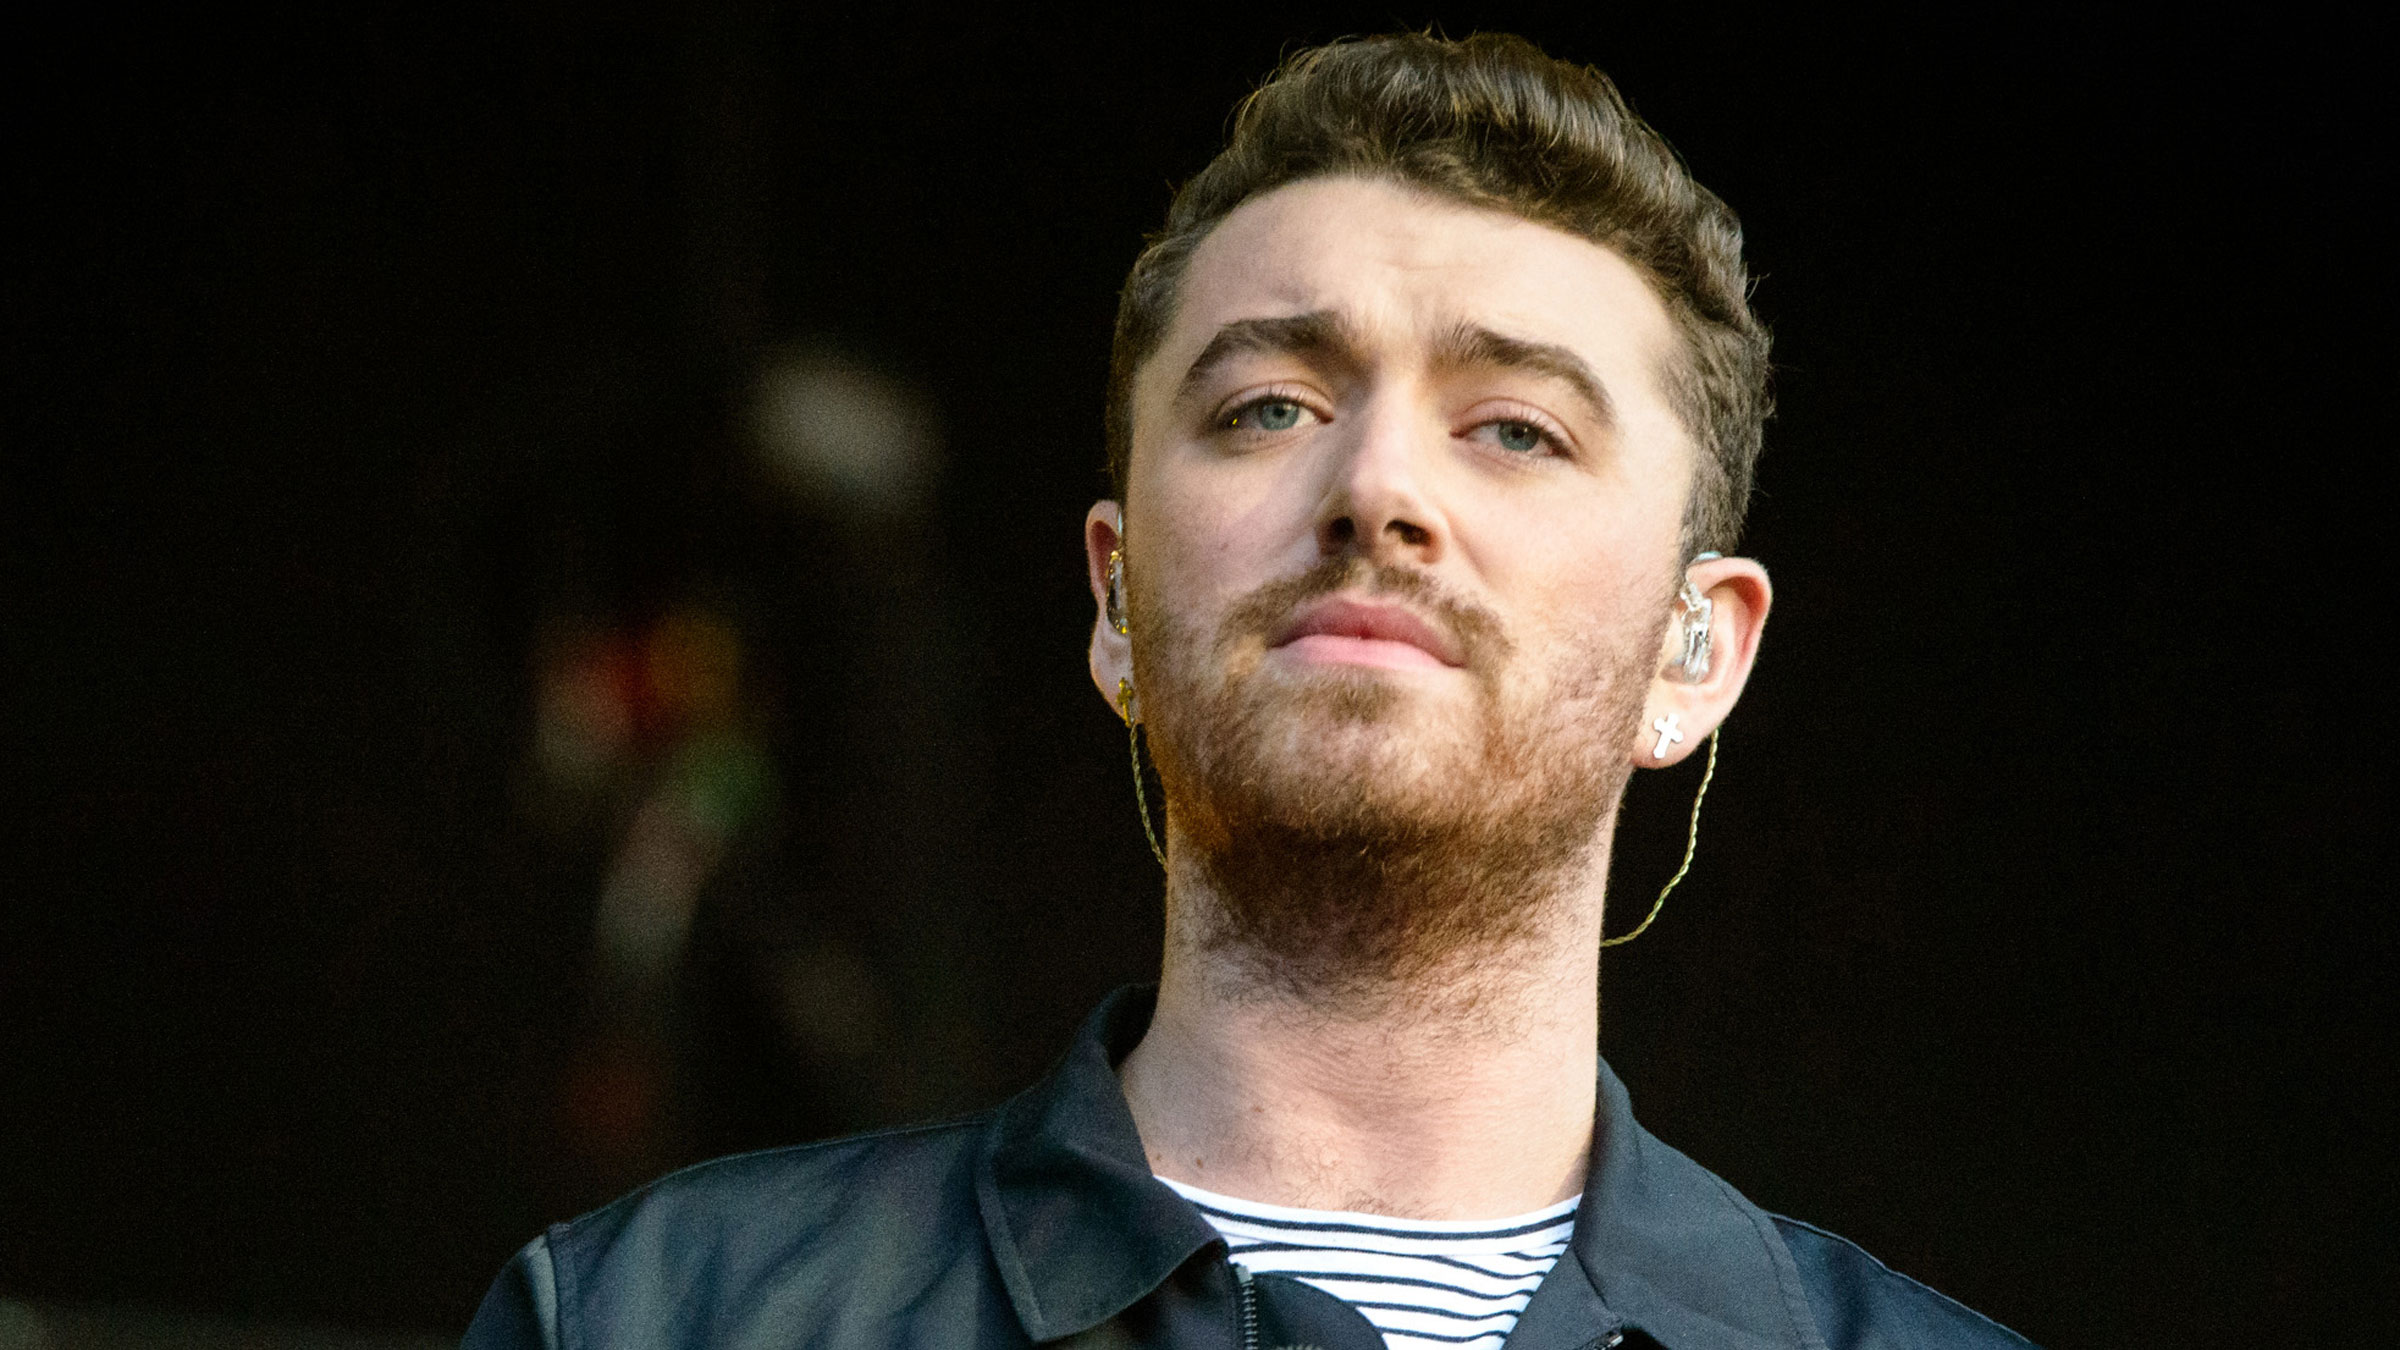 Sam smith home